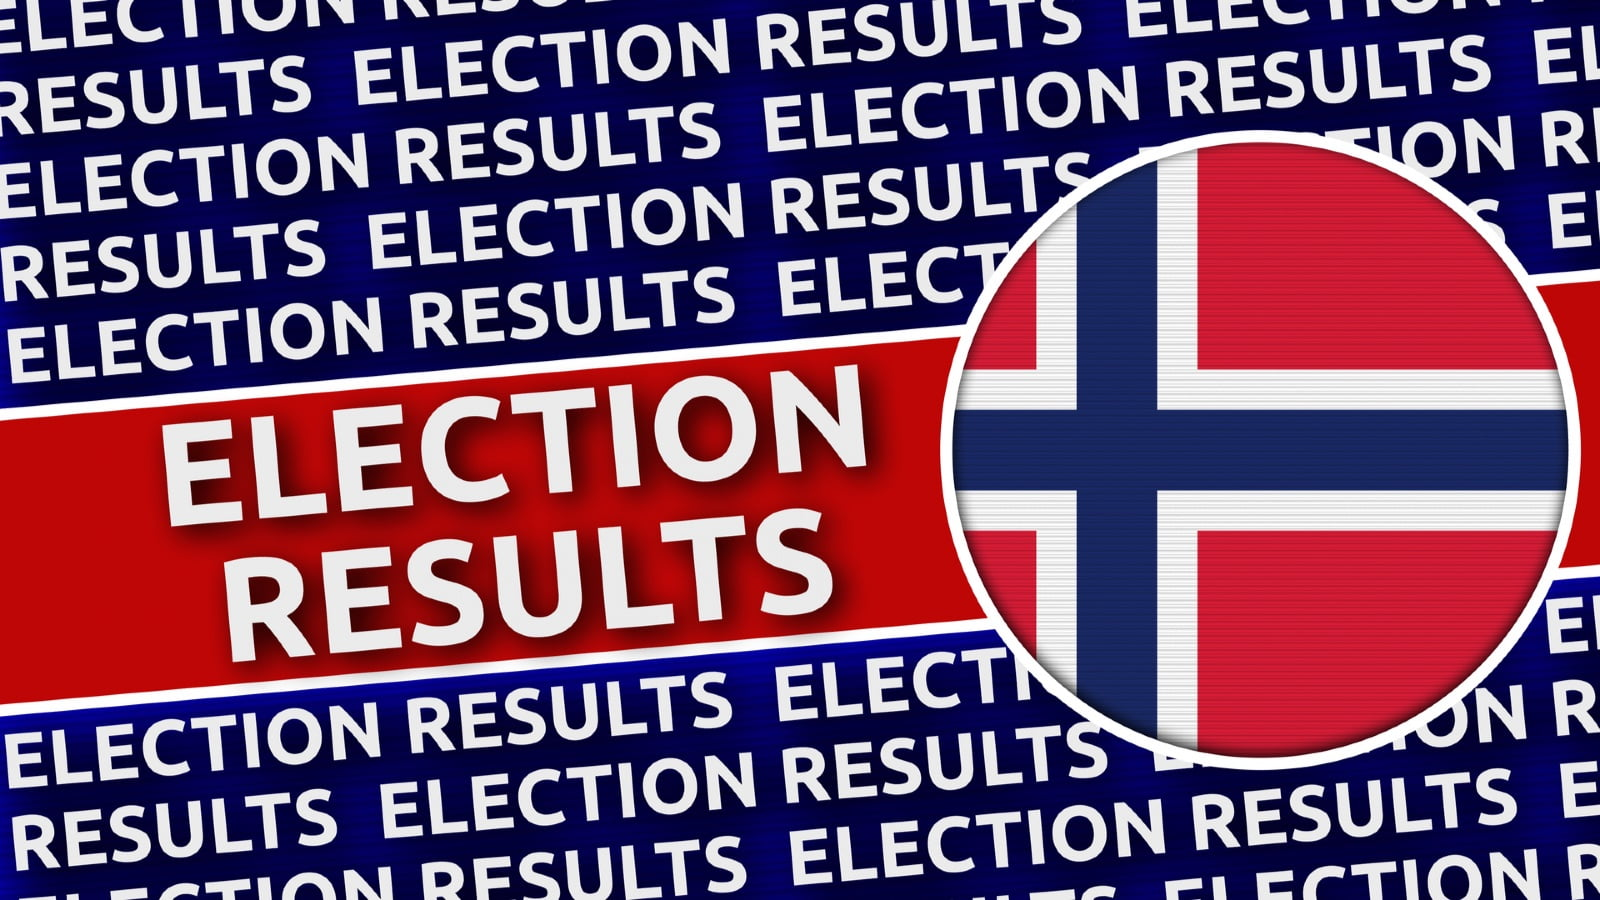 Norway 2021 election results graphic